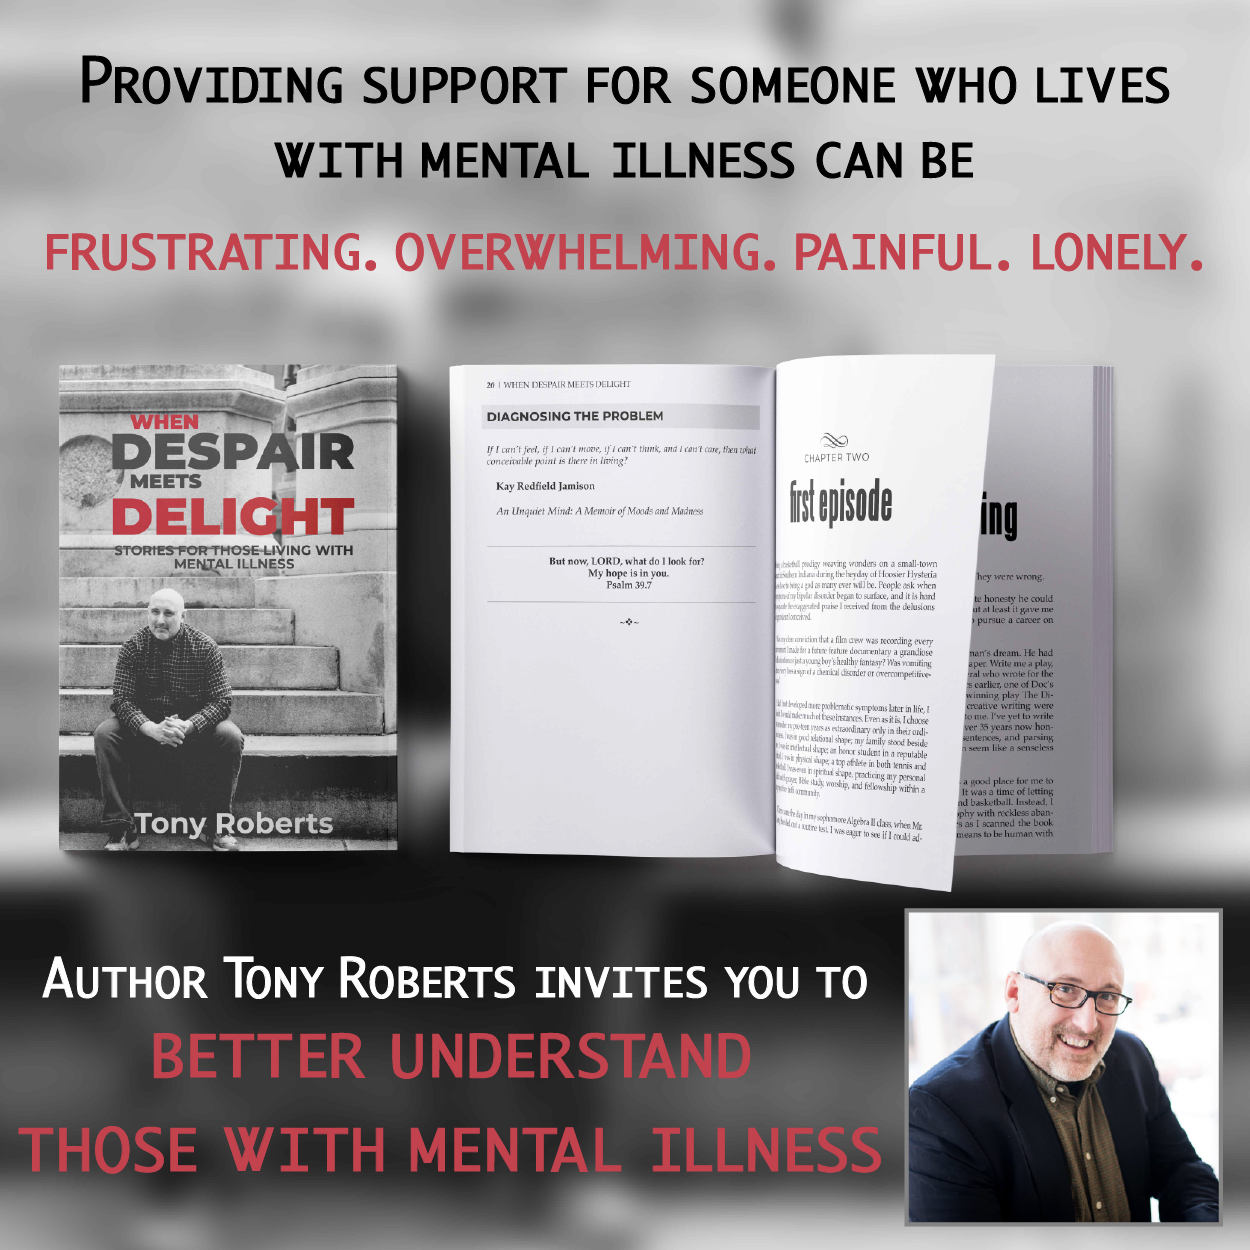 Better Understand Those With Mental Illness